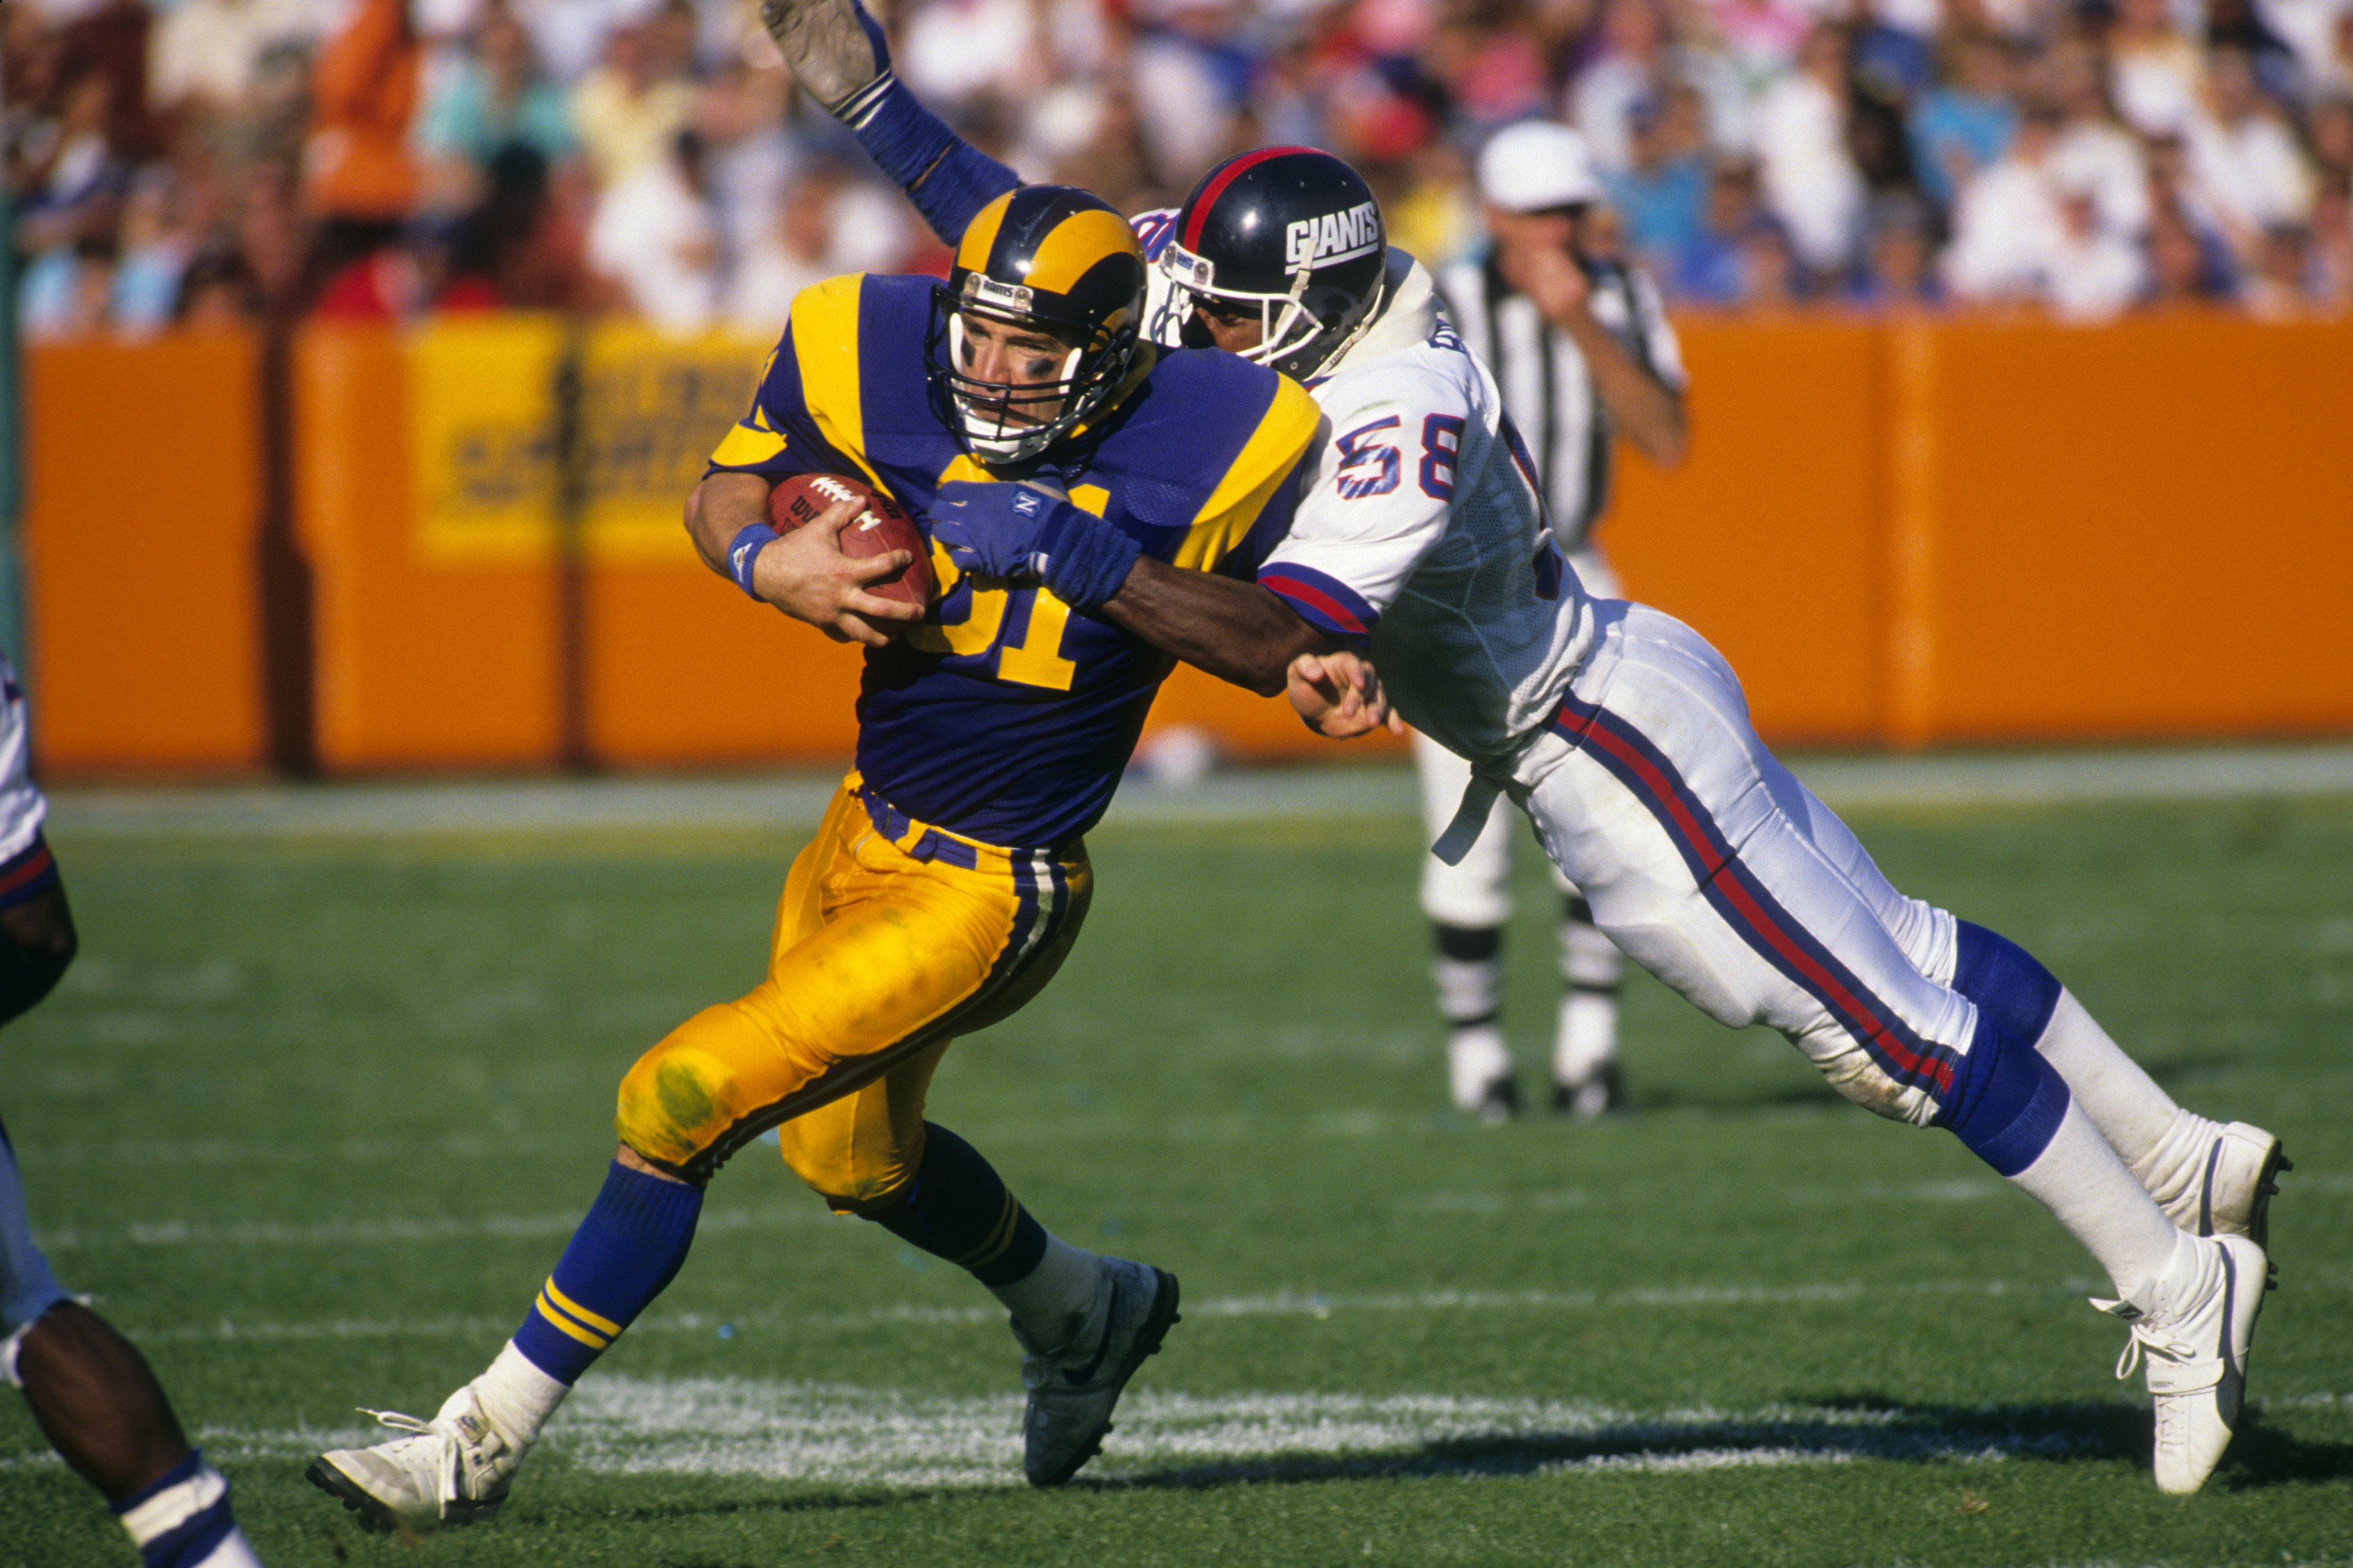 ANAHEIM, CA - NOVEMBER 12:  Tight end Pete Holohan #81 of the Los Angeles Rams tries to break a tackle by  linebacker Carl Banks #58 of the New York Giants during the game at Anaheim Stadium on November 12, 1989 in Anaheim, California. The Rams won 31-10.